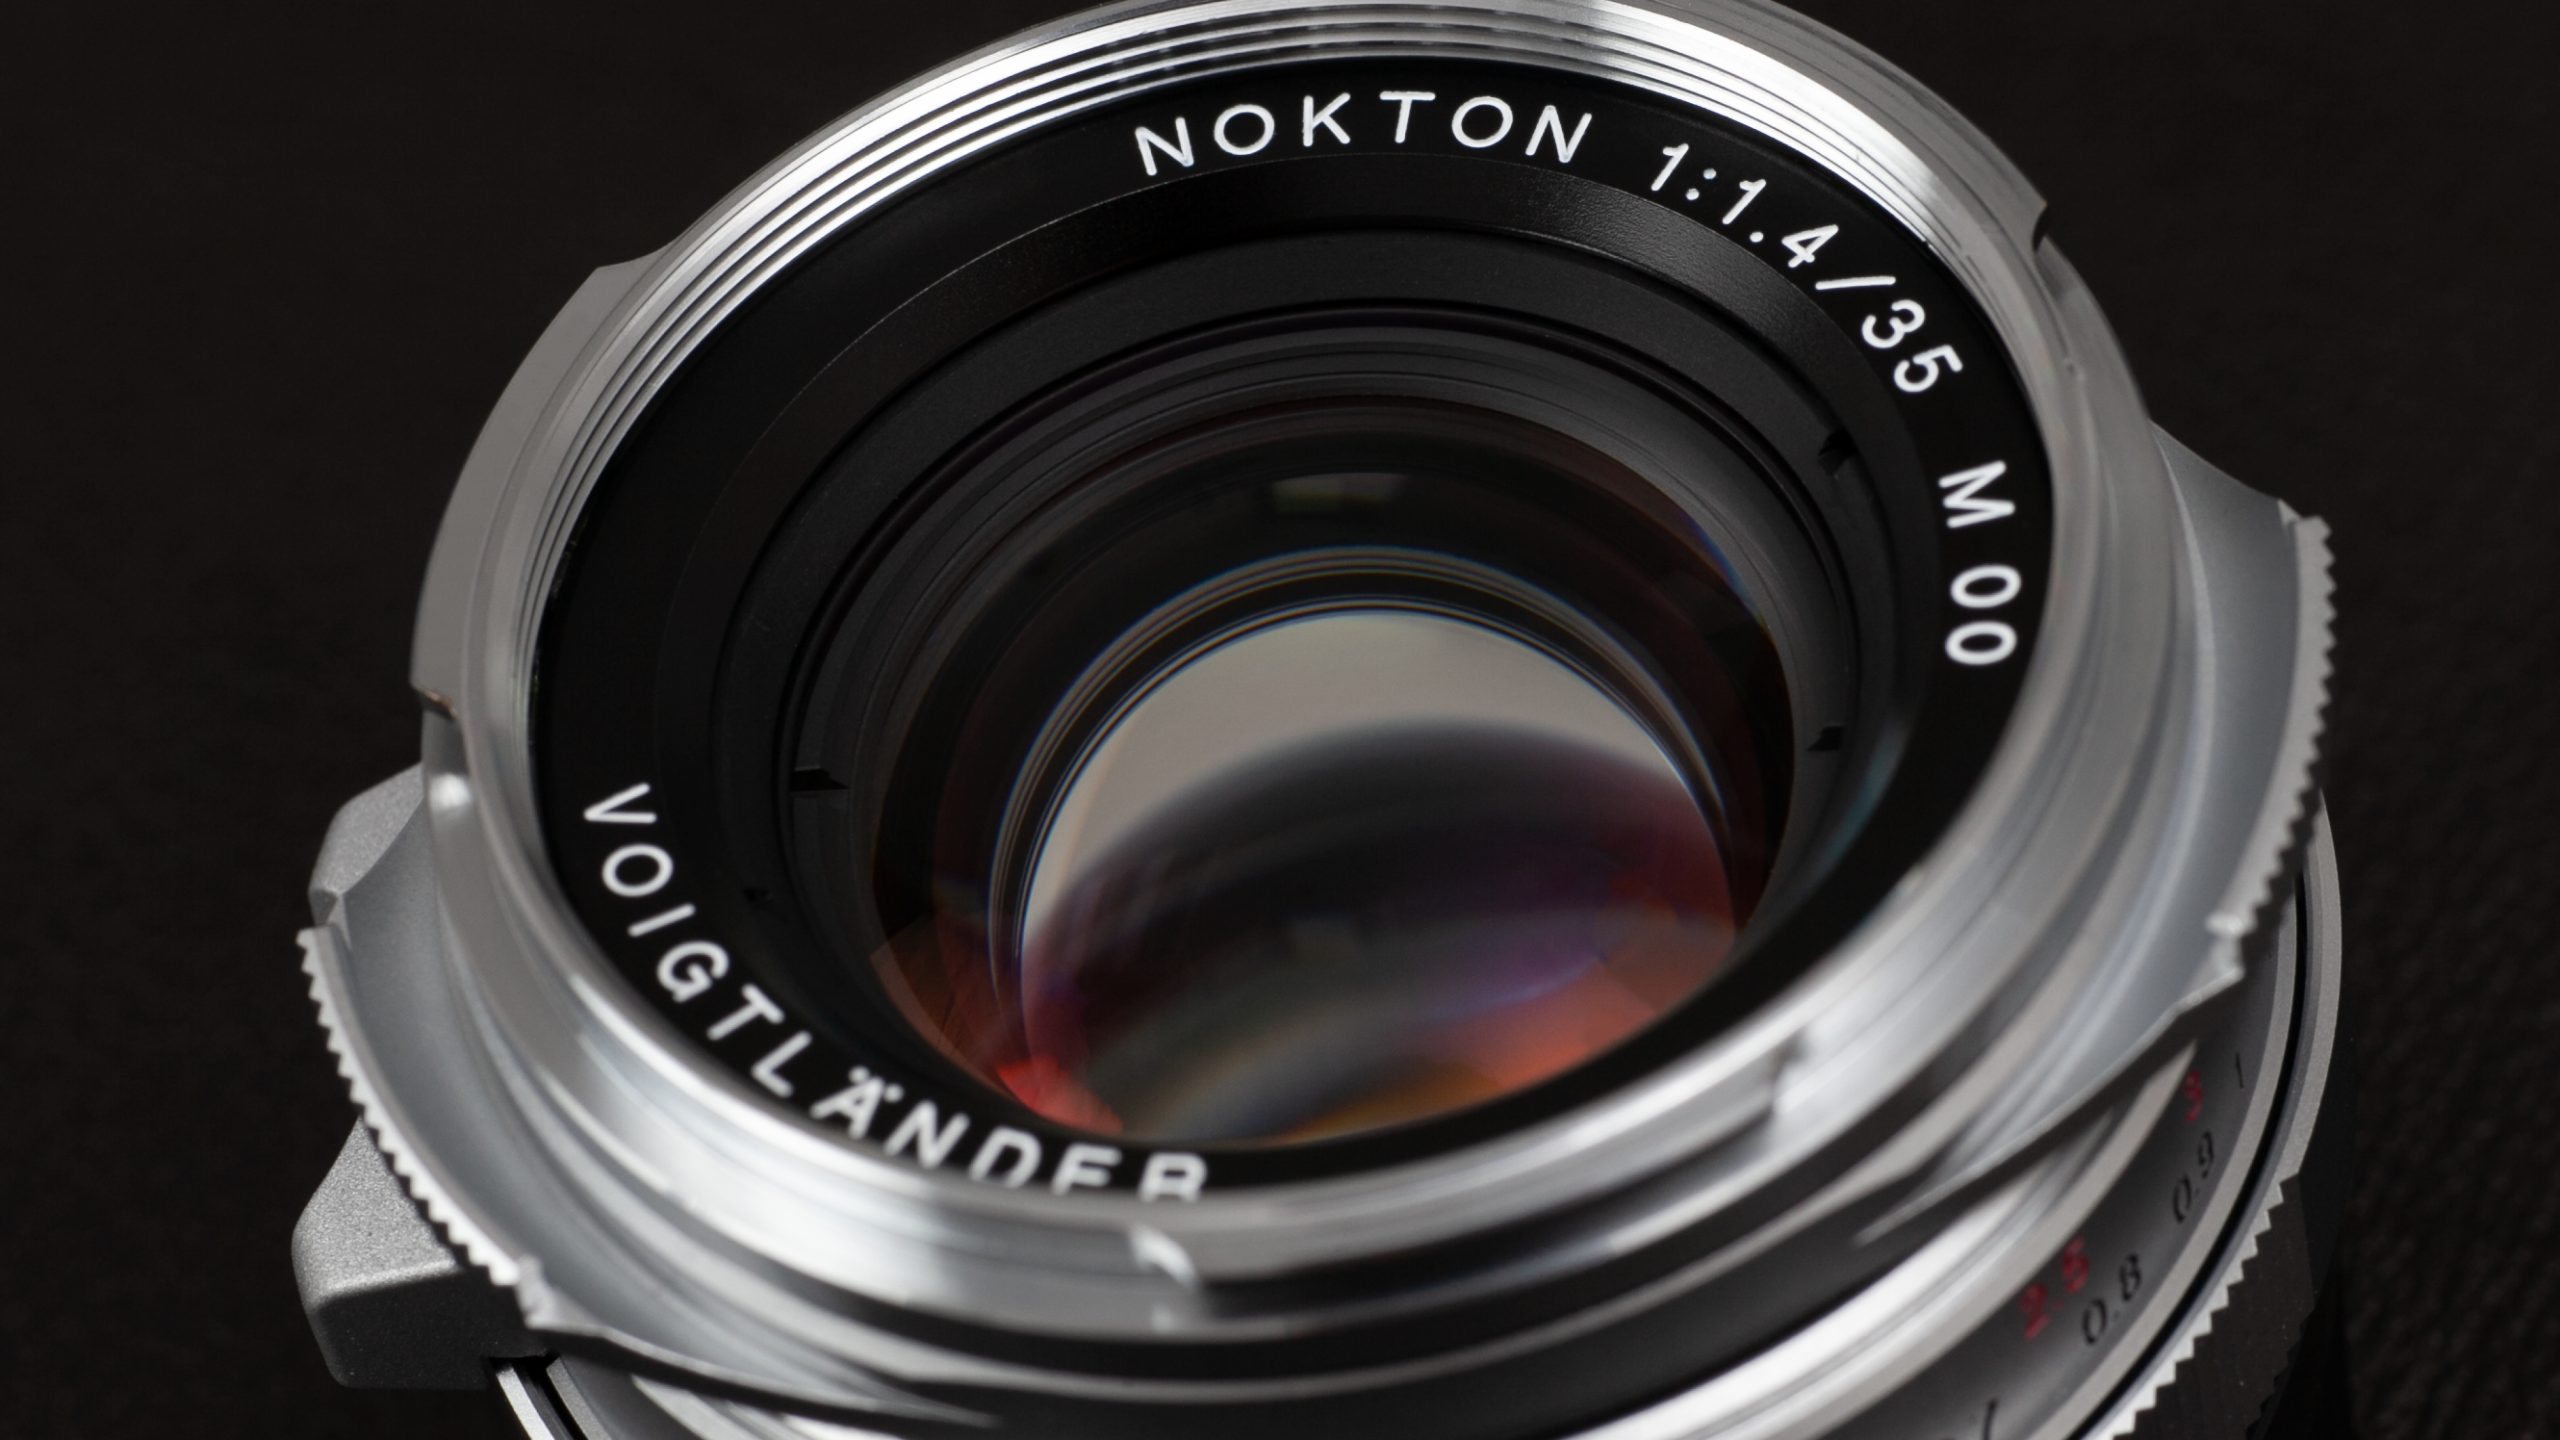 【Voigtlander】NOKTON Classic 35mm F1.4 MC VM ~MapCamera 25th Edition~ 一年後のカタチ。